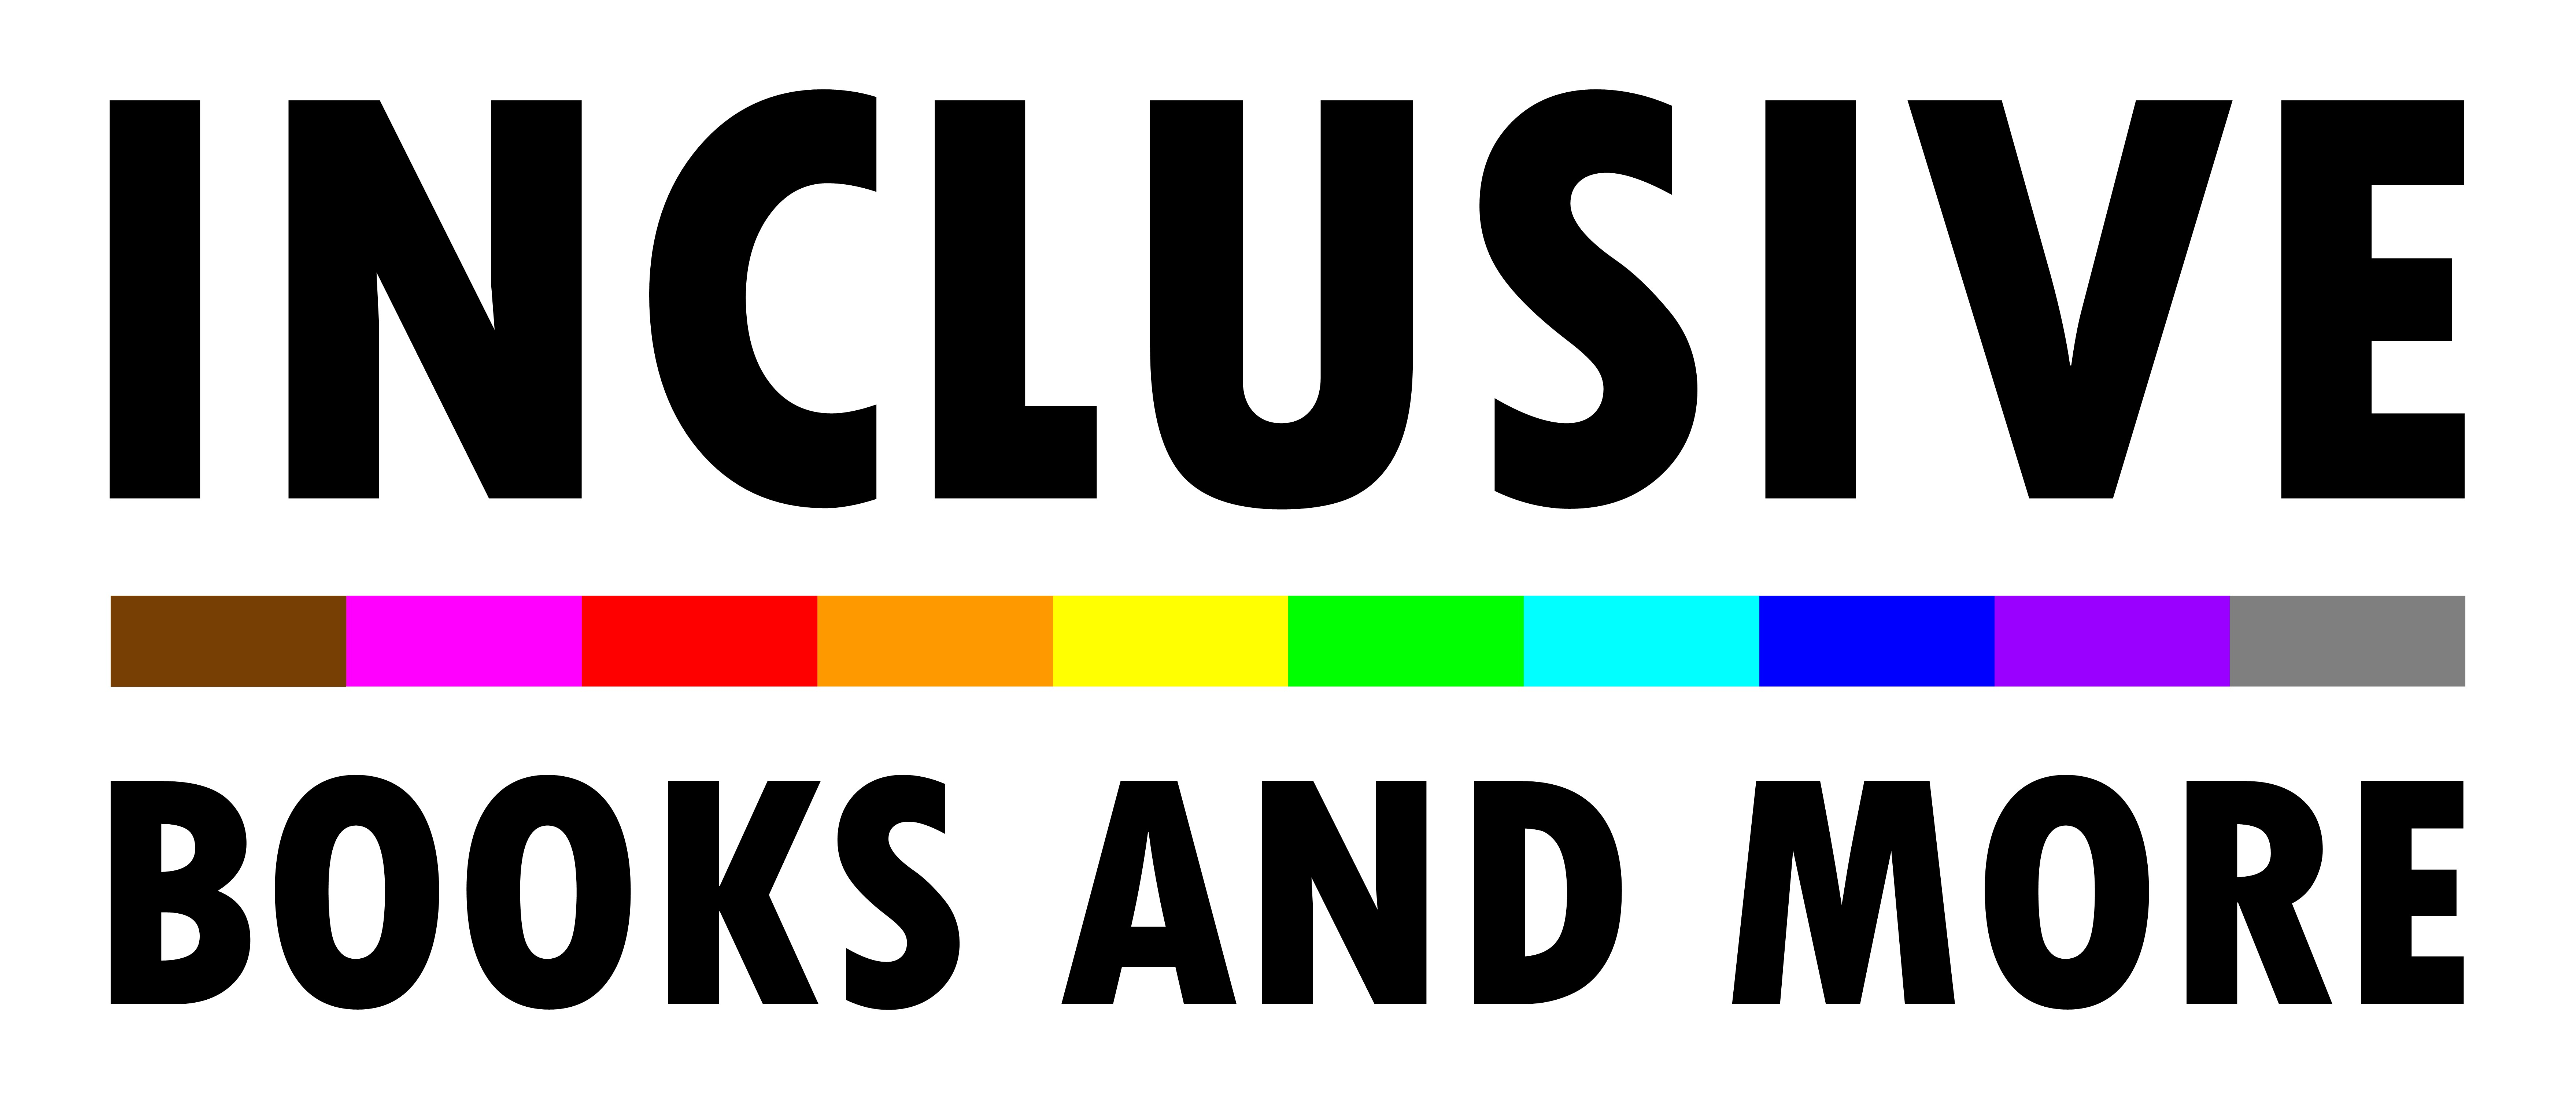 INCLUSIVE BOOKS AND MORE